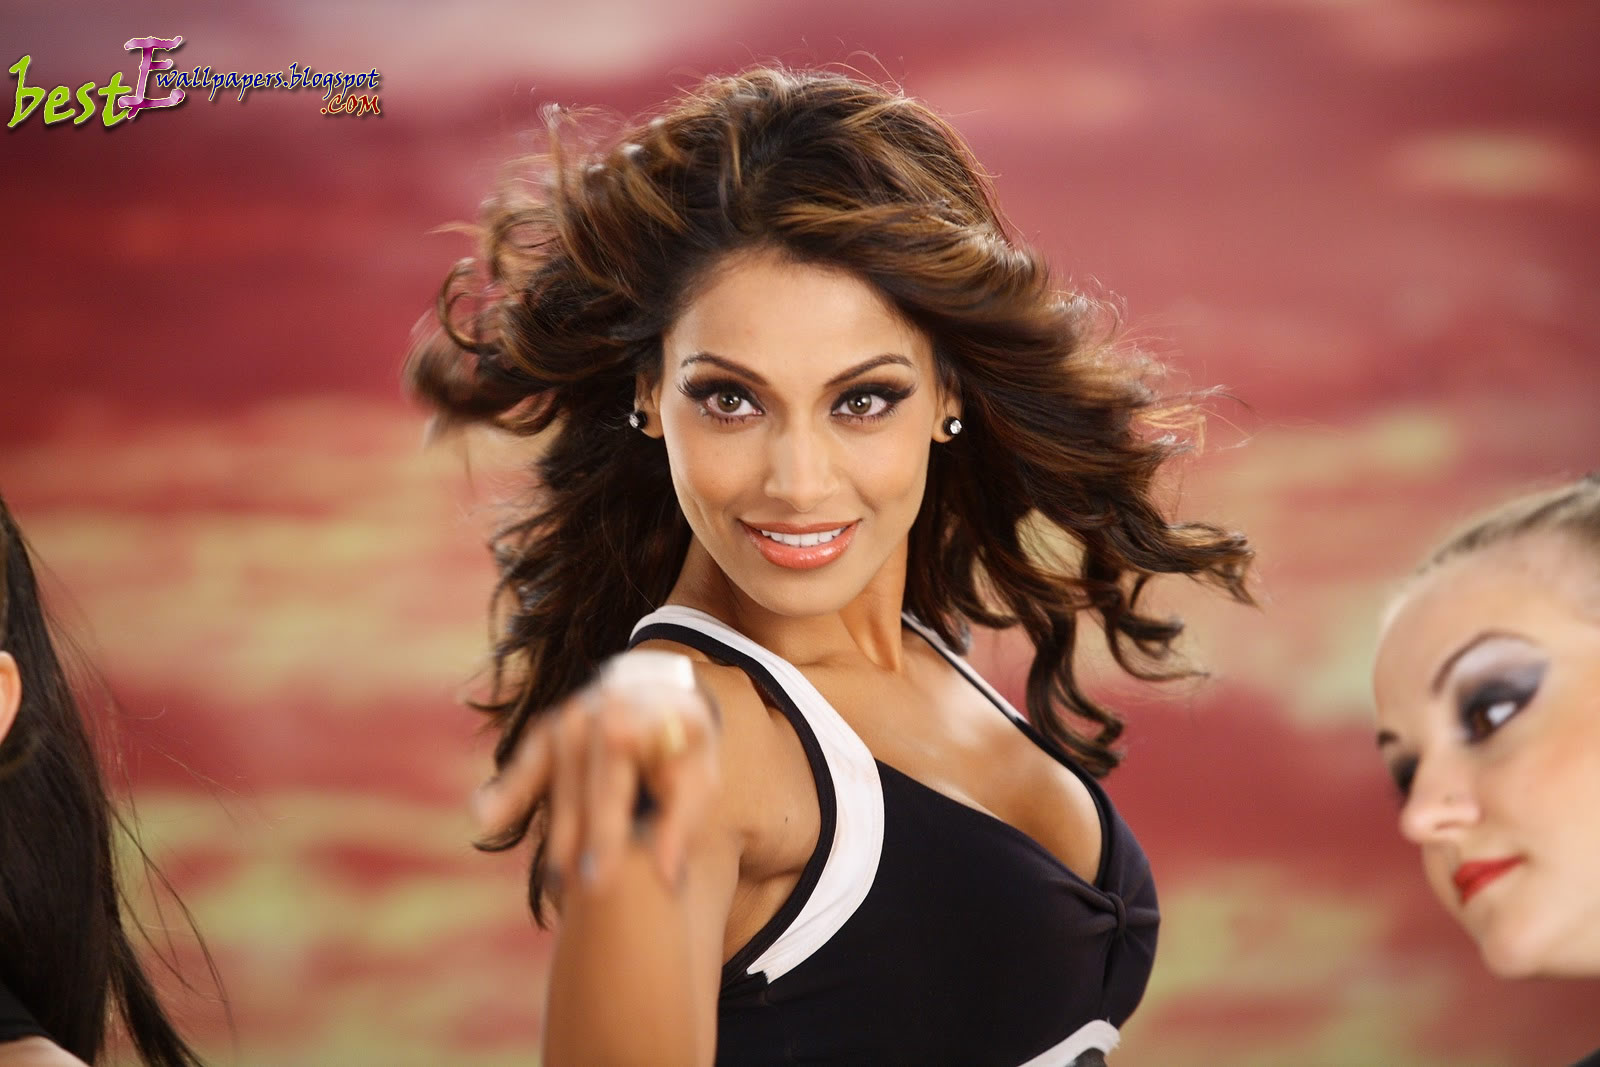 Bipasa Basunude Good bipasha basu, nude best wallpapers | best wallpapers backgrounds